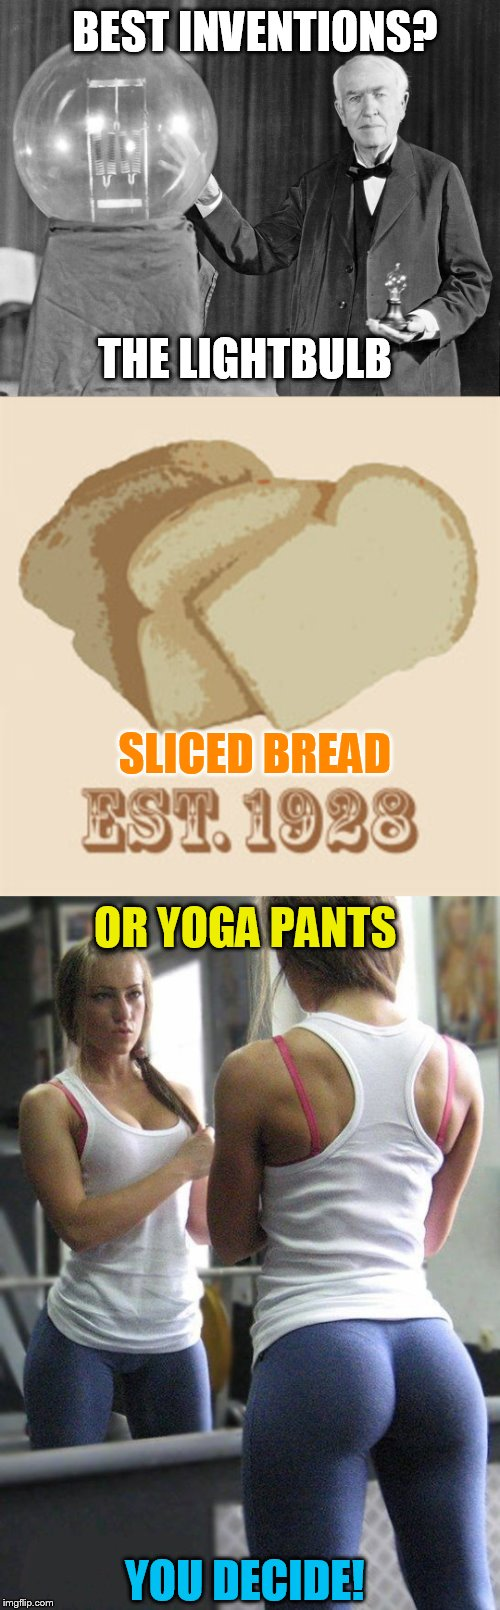 The Best Invention Is? Yoga Pant's Week A Tetsuoswrath/Lynch1979 Event March 20th--27th |  BEST INVENTIONS? THE LIGHTBULB; SLICED BREAD; OR YOGA PANTS; YOU DECIDE! | image tagged in yoga pants week,yoga pants,lightbulb,sliced bread,meme,inventions | made w/ Imgflip meme maker